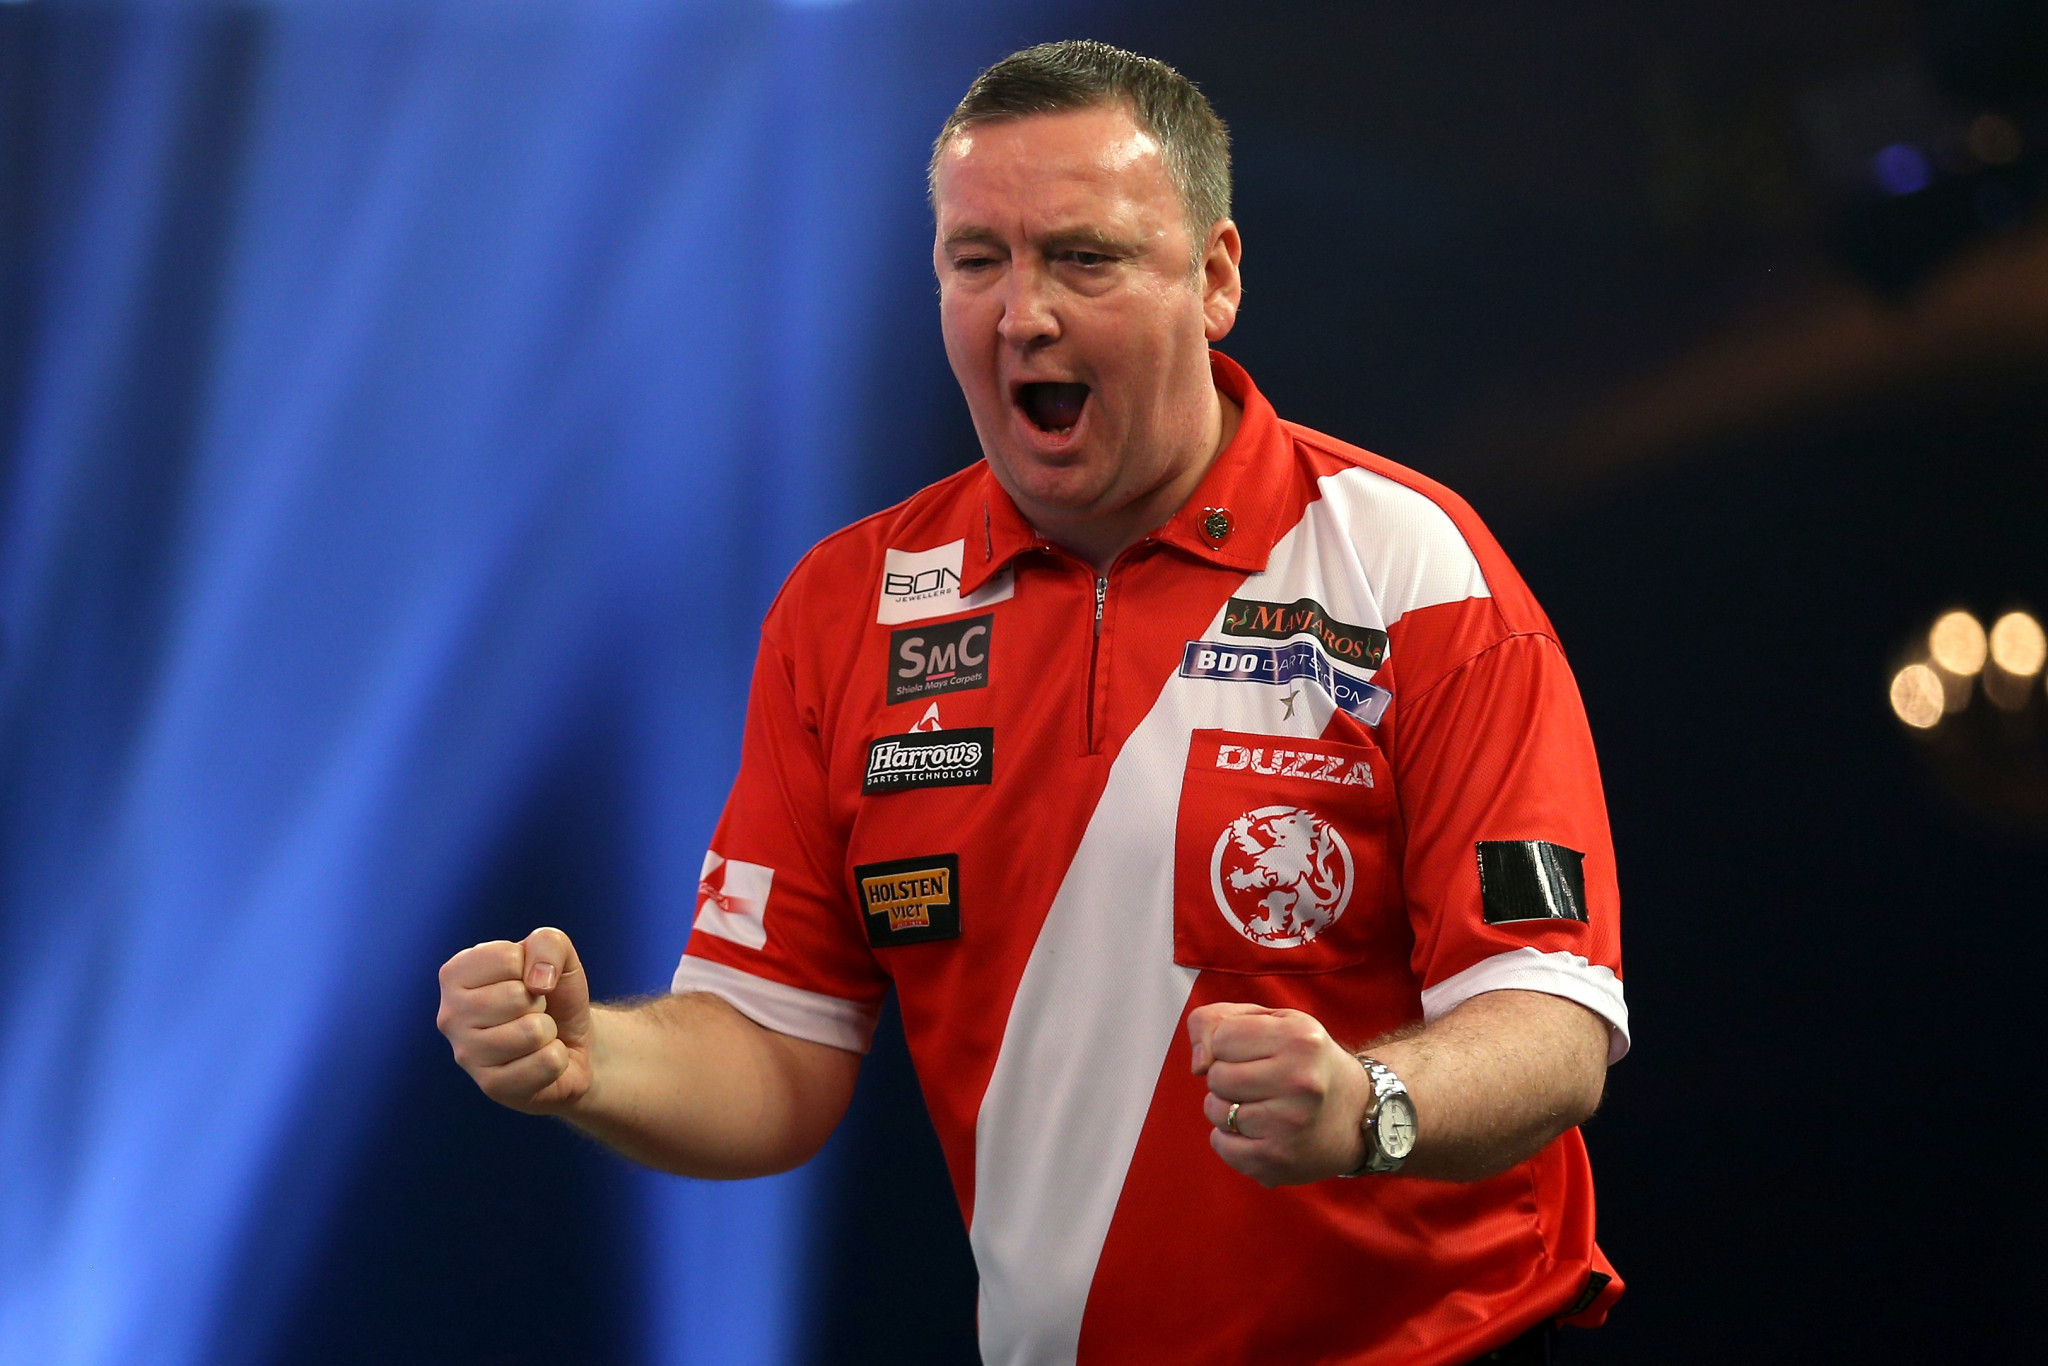 Glen Durrant. of England. celebrates a remarkable comeback at the BDO World Darts Championship at Lakeside Shopping Centre ©Getty Images